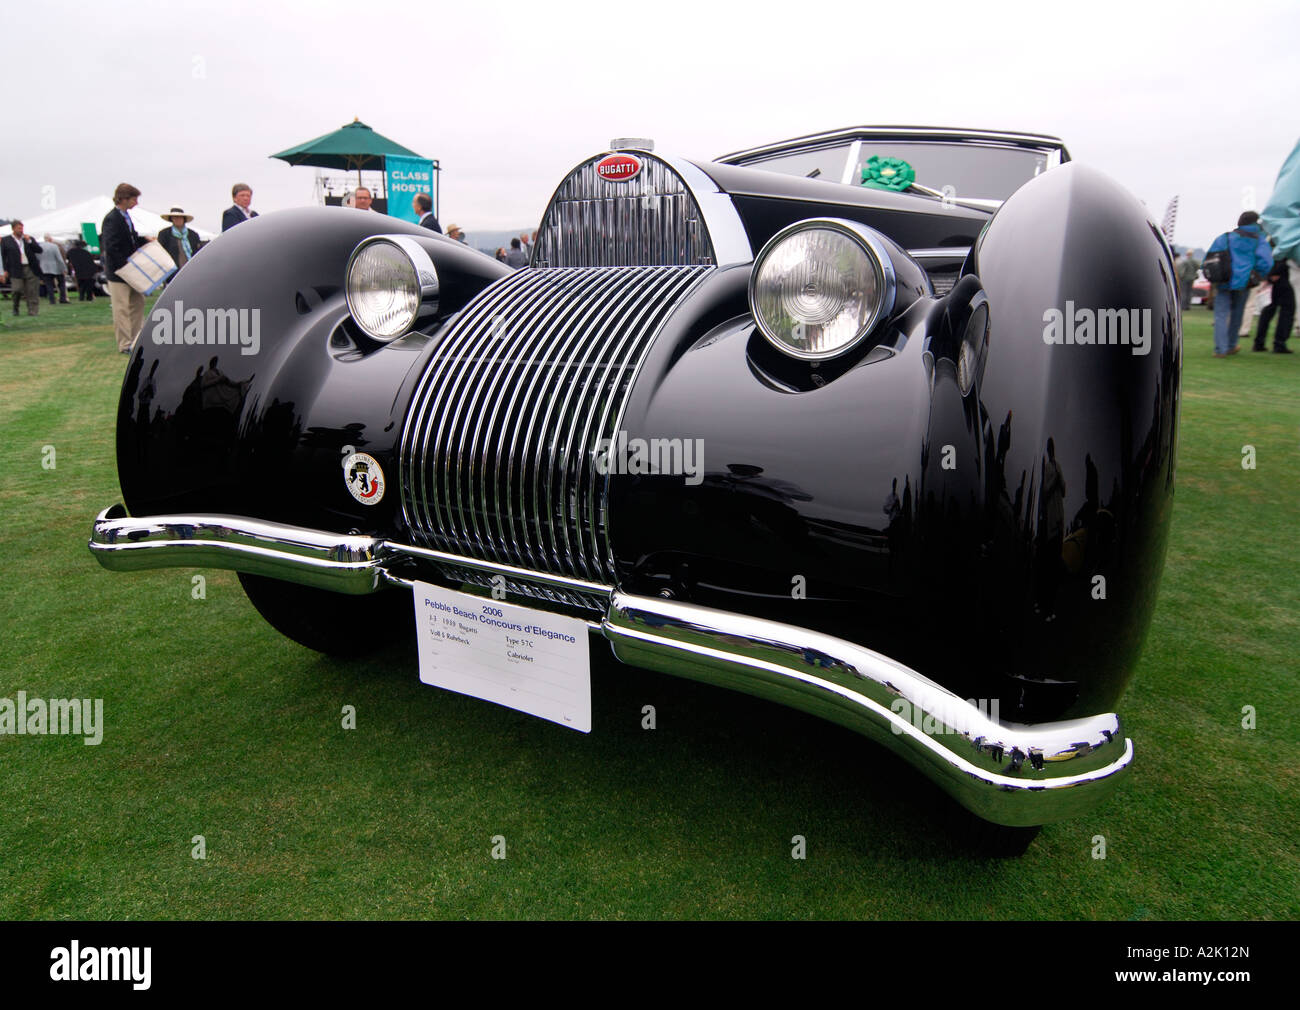 bugatti 57c voll ruhrbeck cabriolet 1939 pebble beach stock photo royalty free image. Black Bedroom Furniture Sets. Home Design Ideas